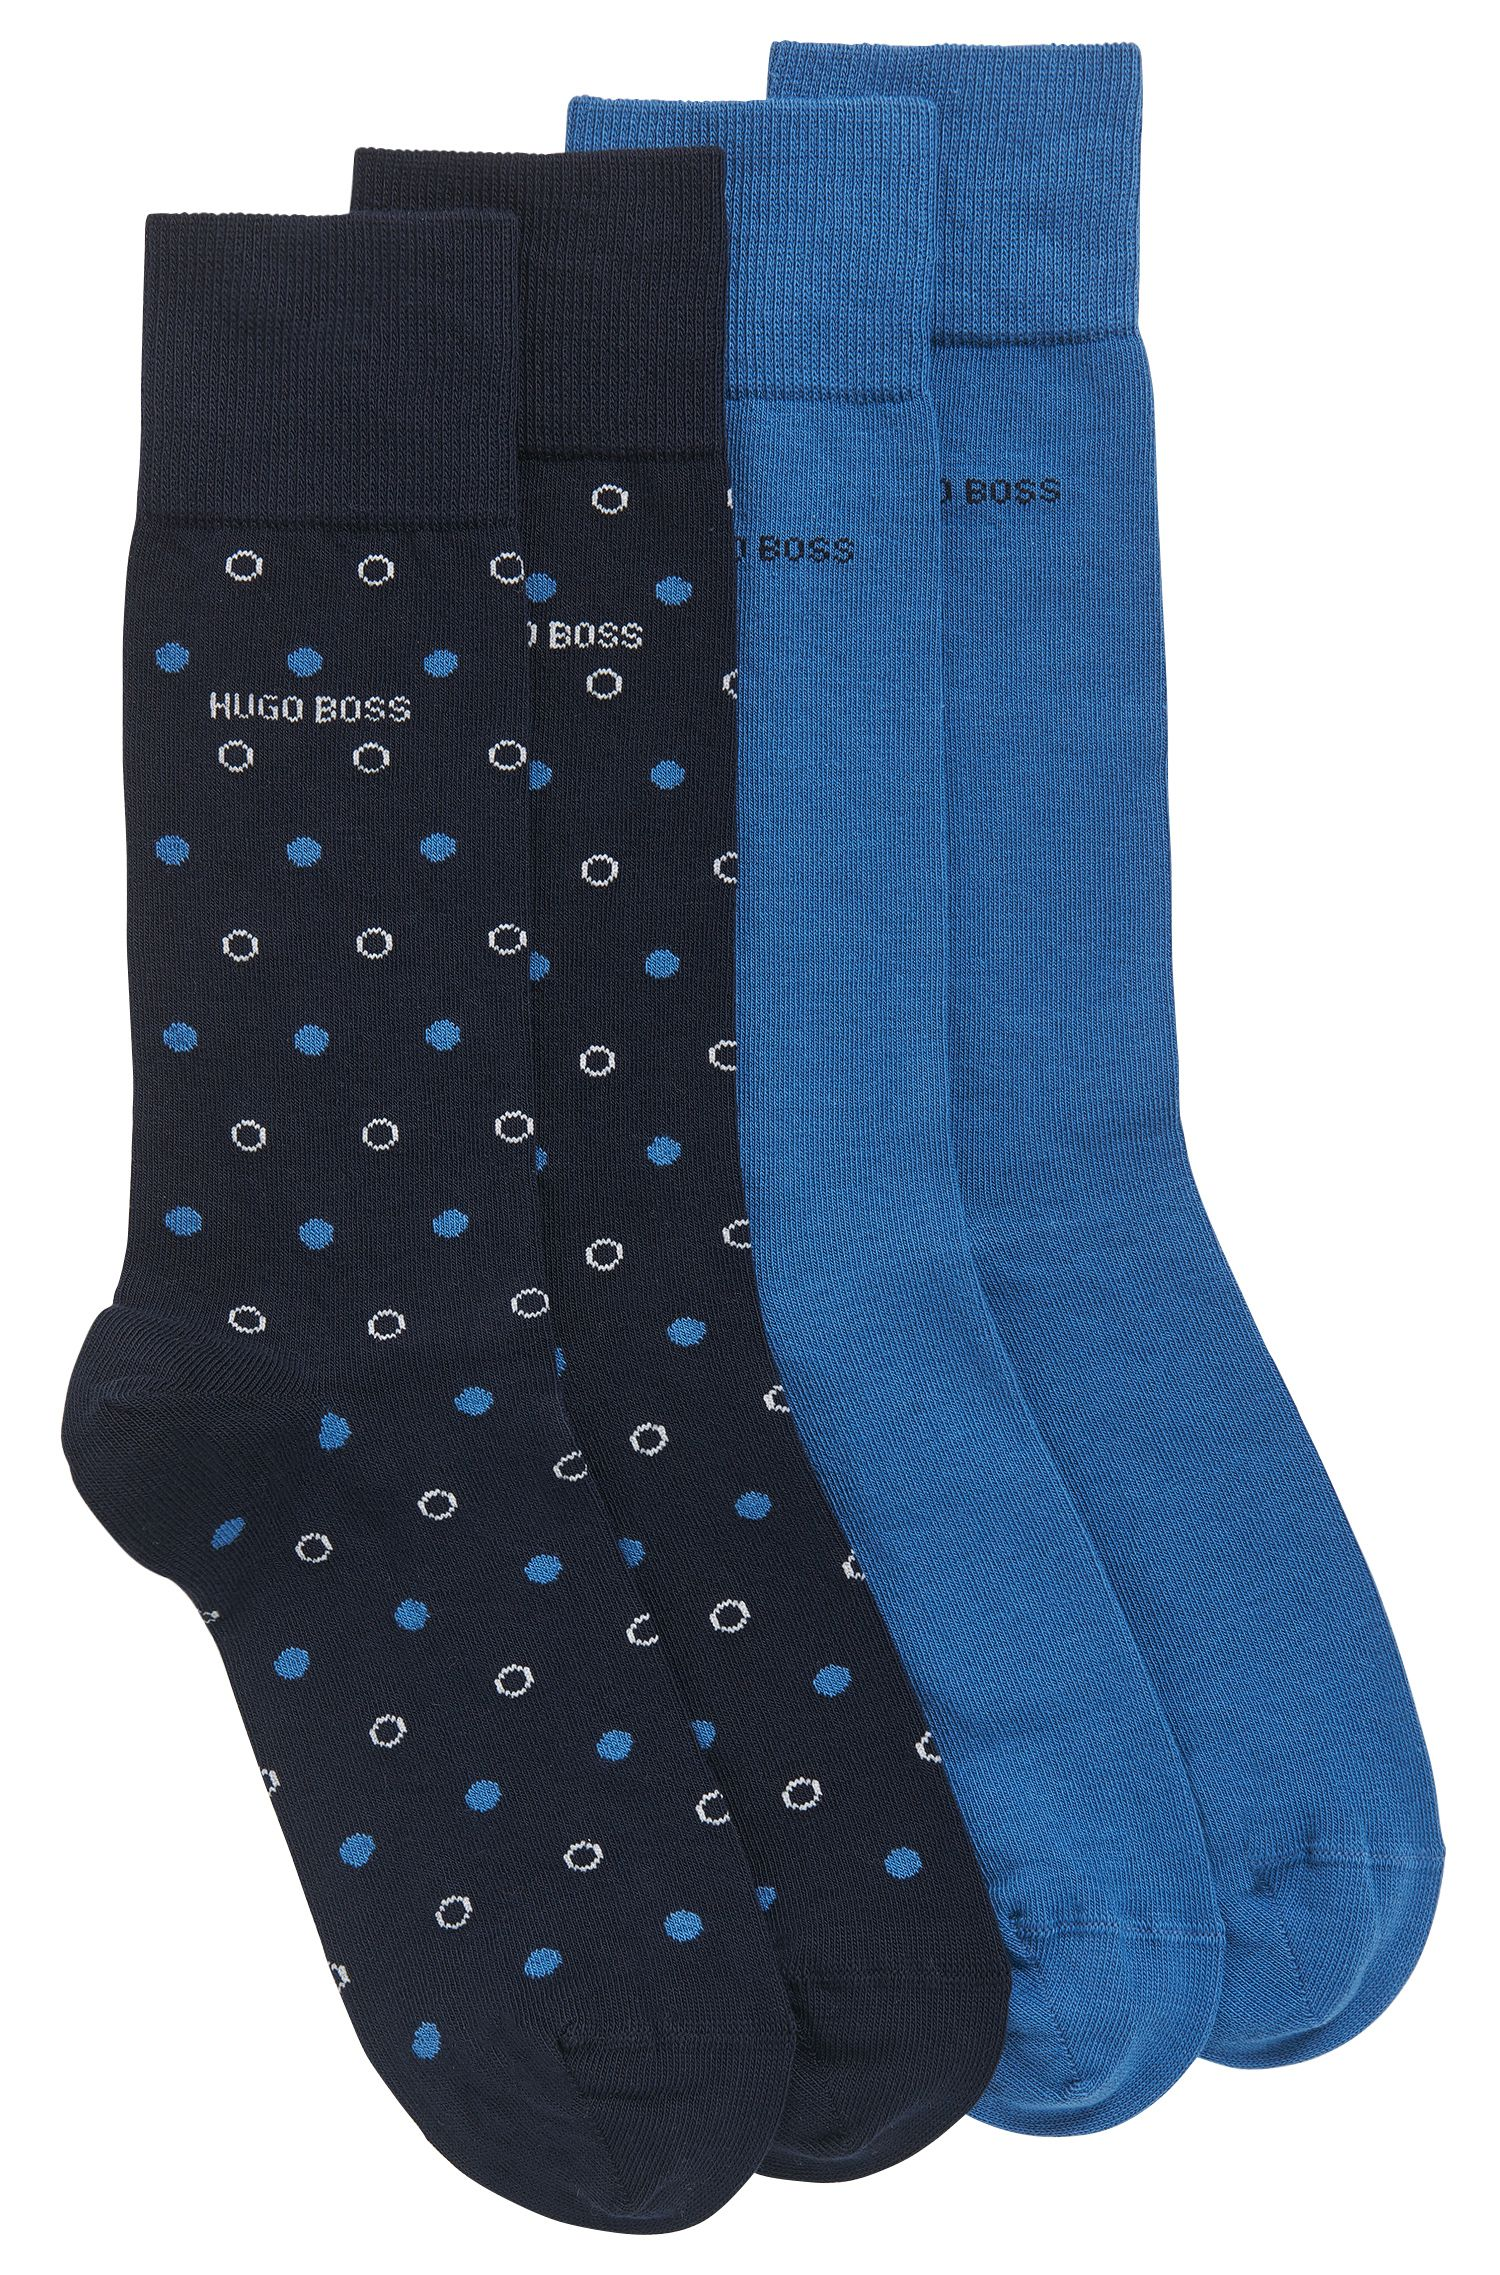 Two-pack of regular-length socks in a combed-cotton blend